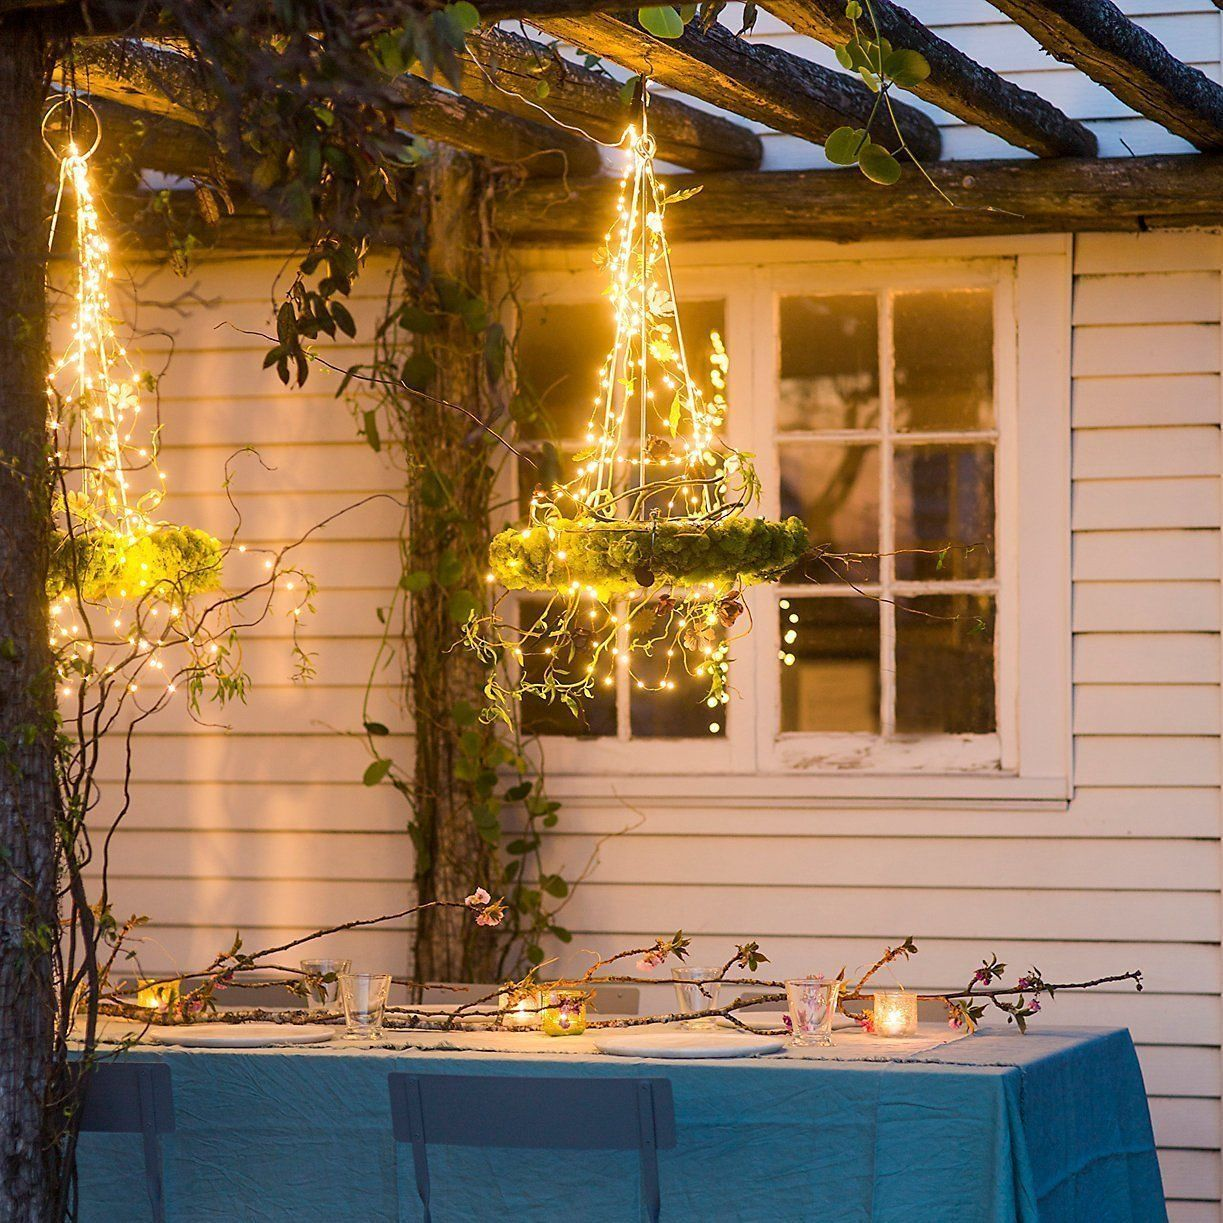 Use small starry string lights and wrap around metal chandelier